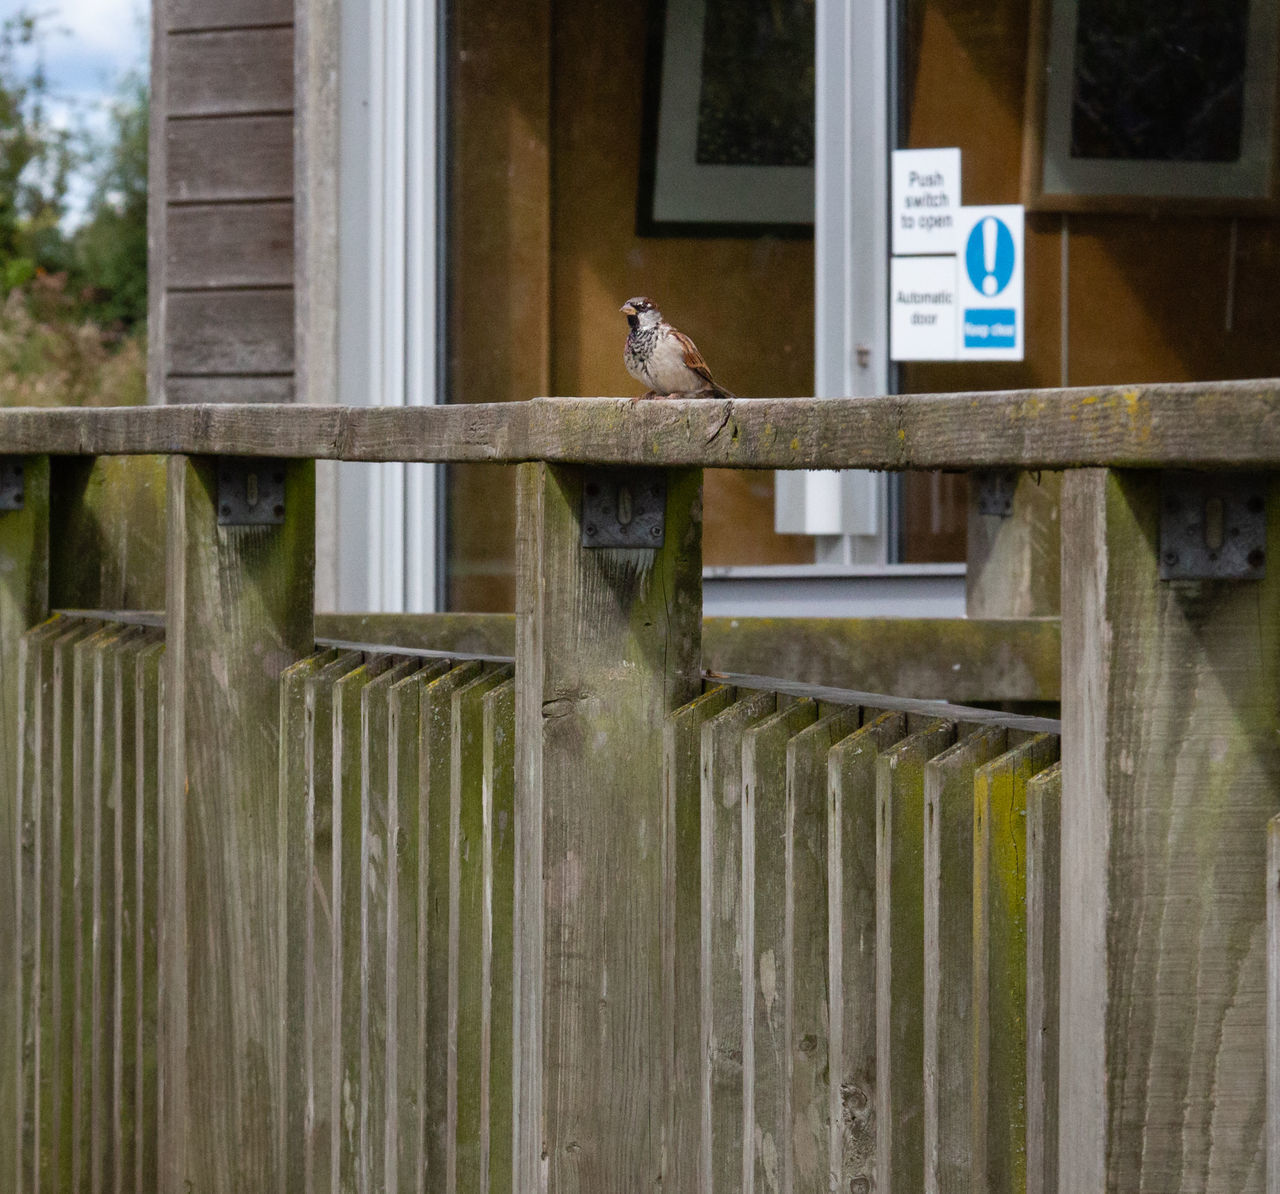 vertebrate, animal themes, animal, barrier, animal wildlife, fence, one animal, boundary, no people, day, bird, architecture, perching, wood - material, railing, built structure, security, protection, metal, animals in the wild, outdoors